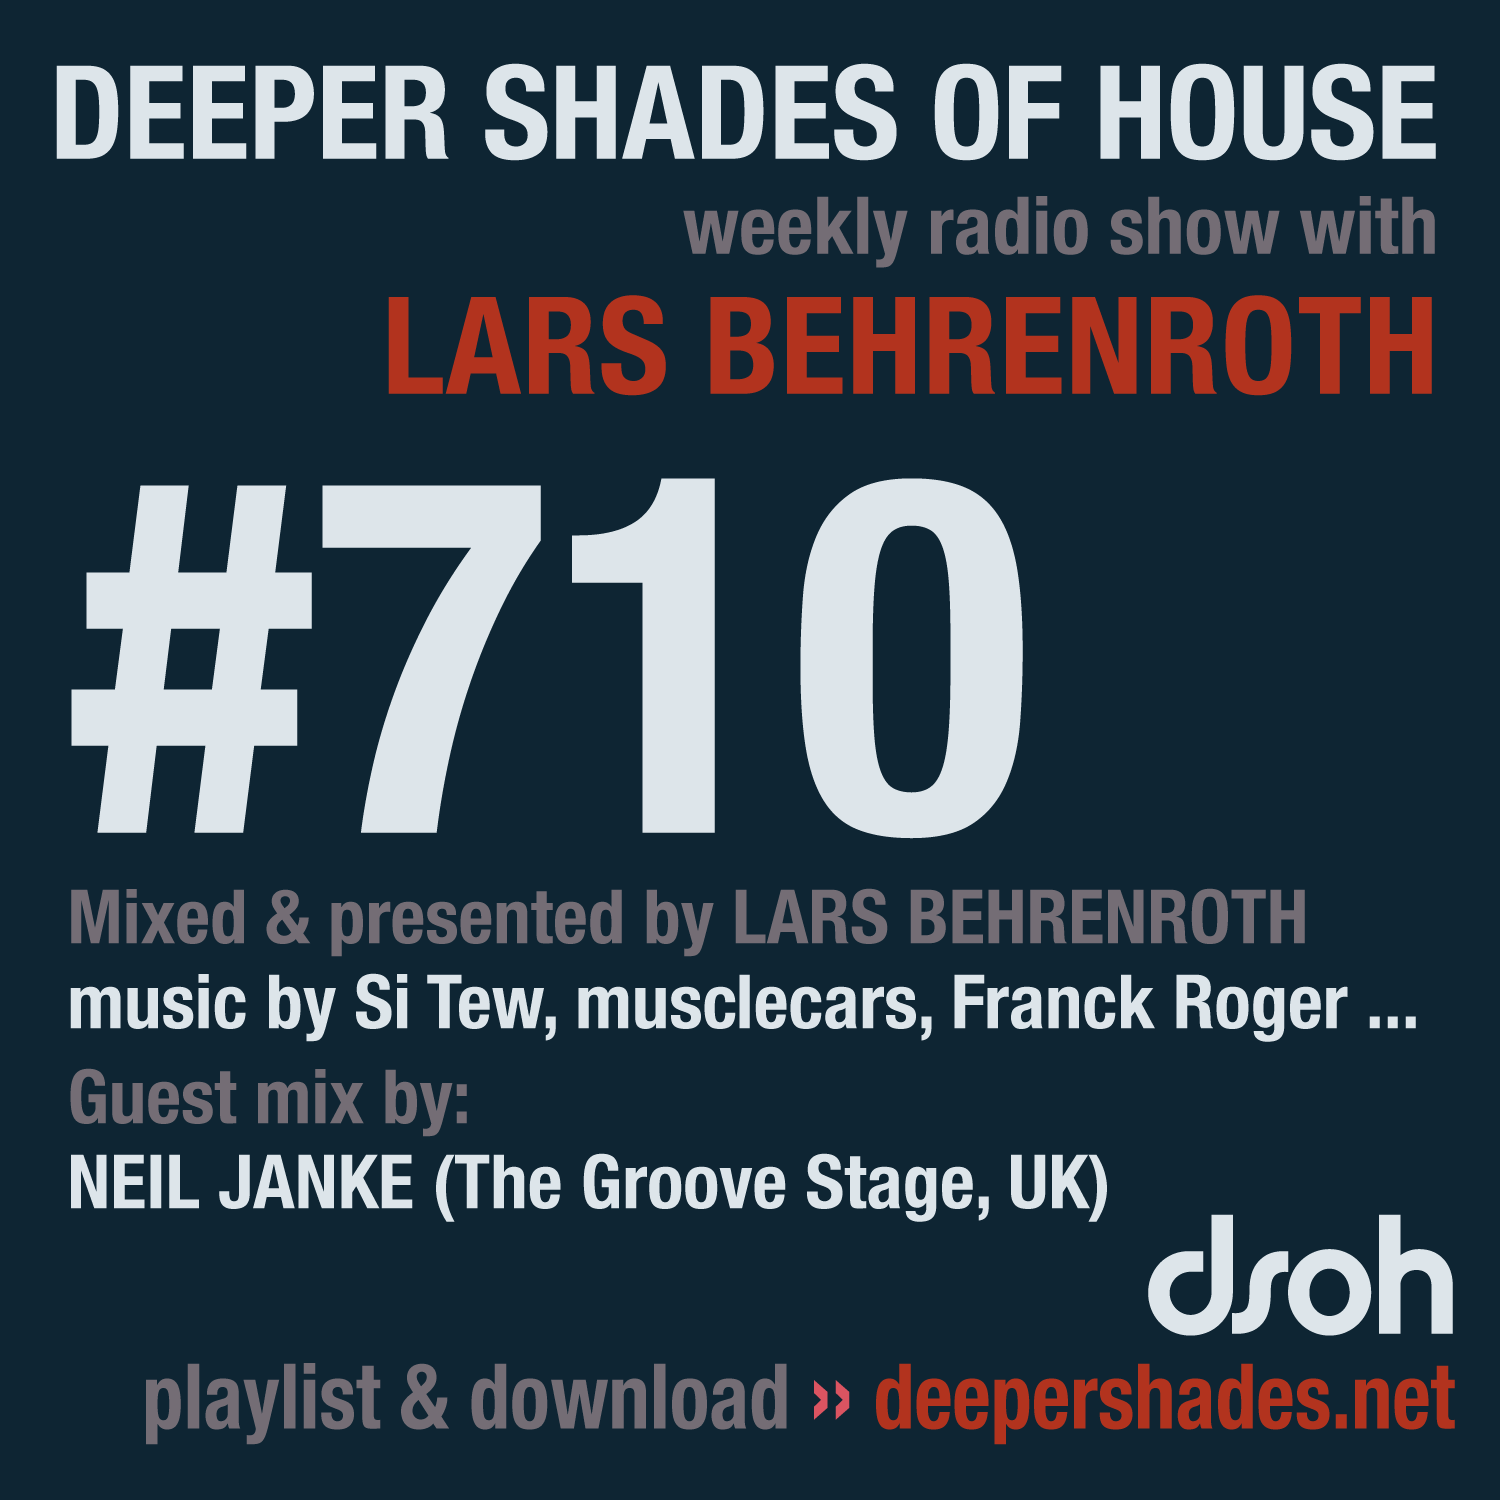 Deeper Shades Of House #710 - guest mix by NEIL JANKE